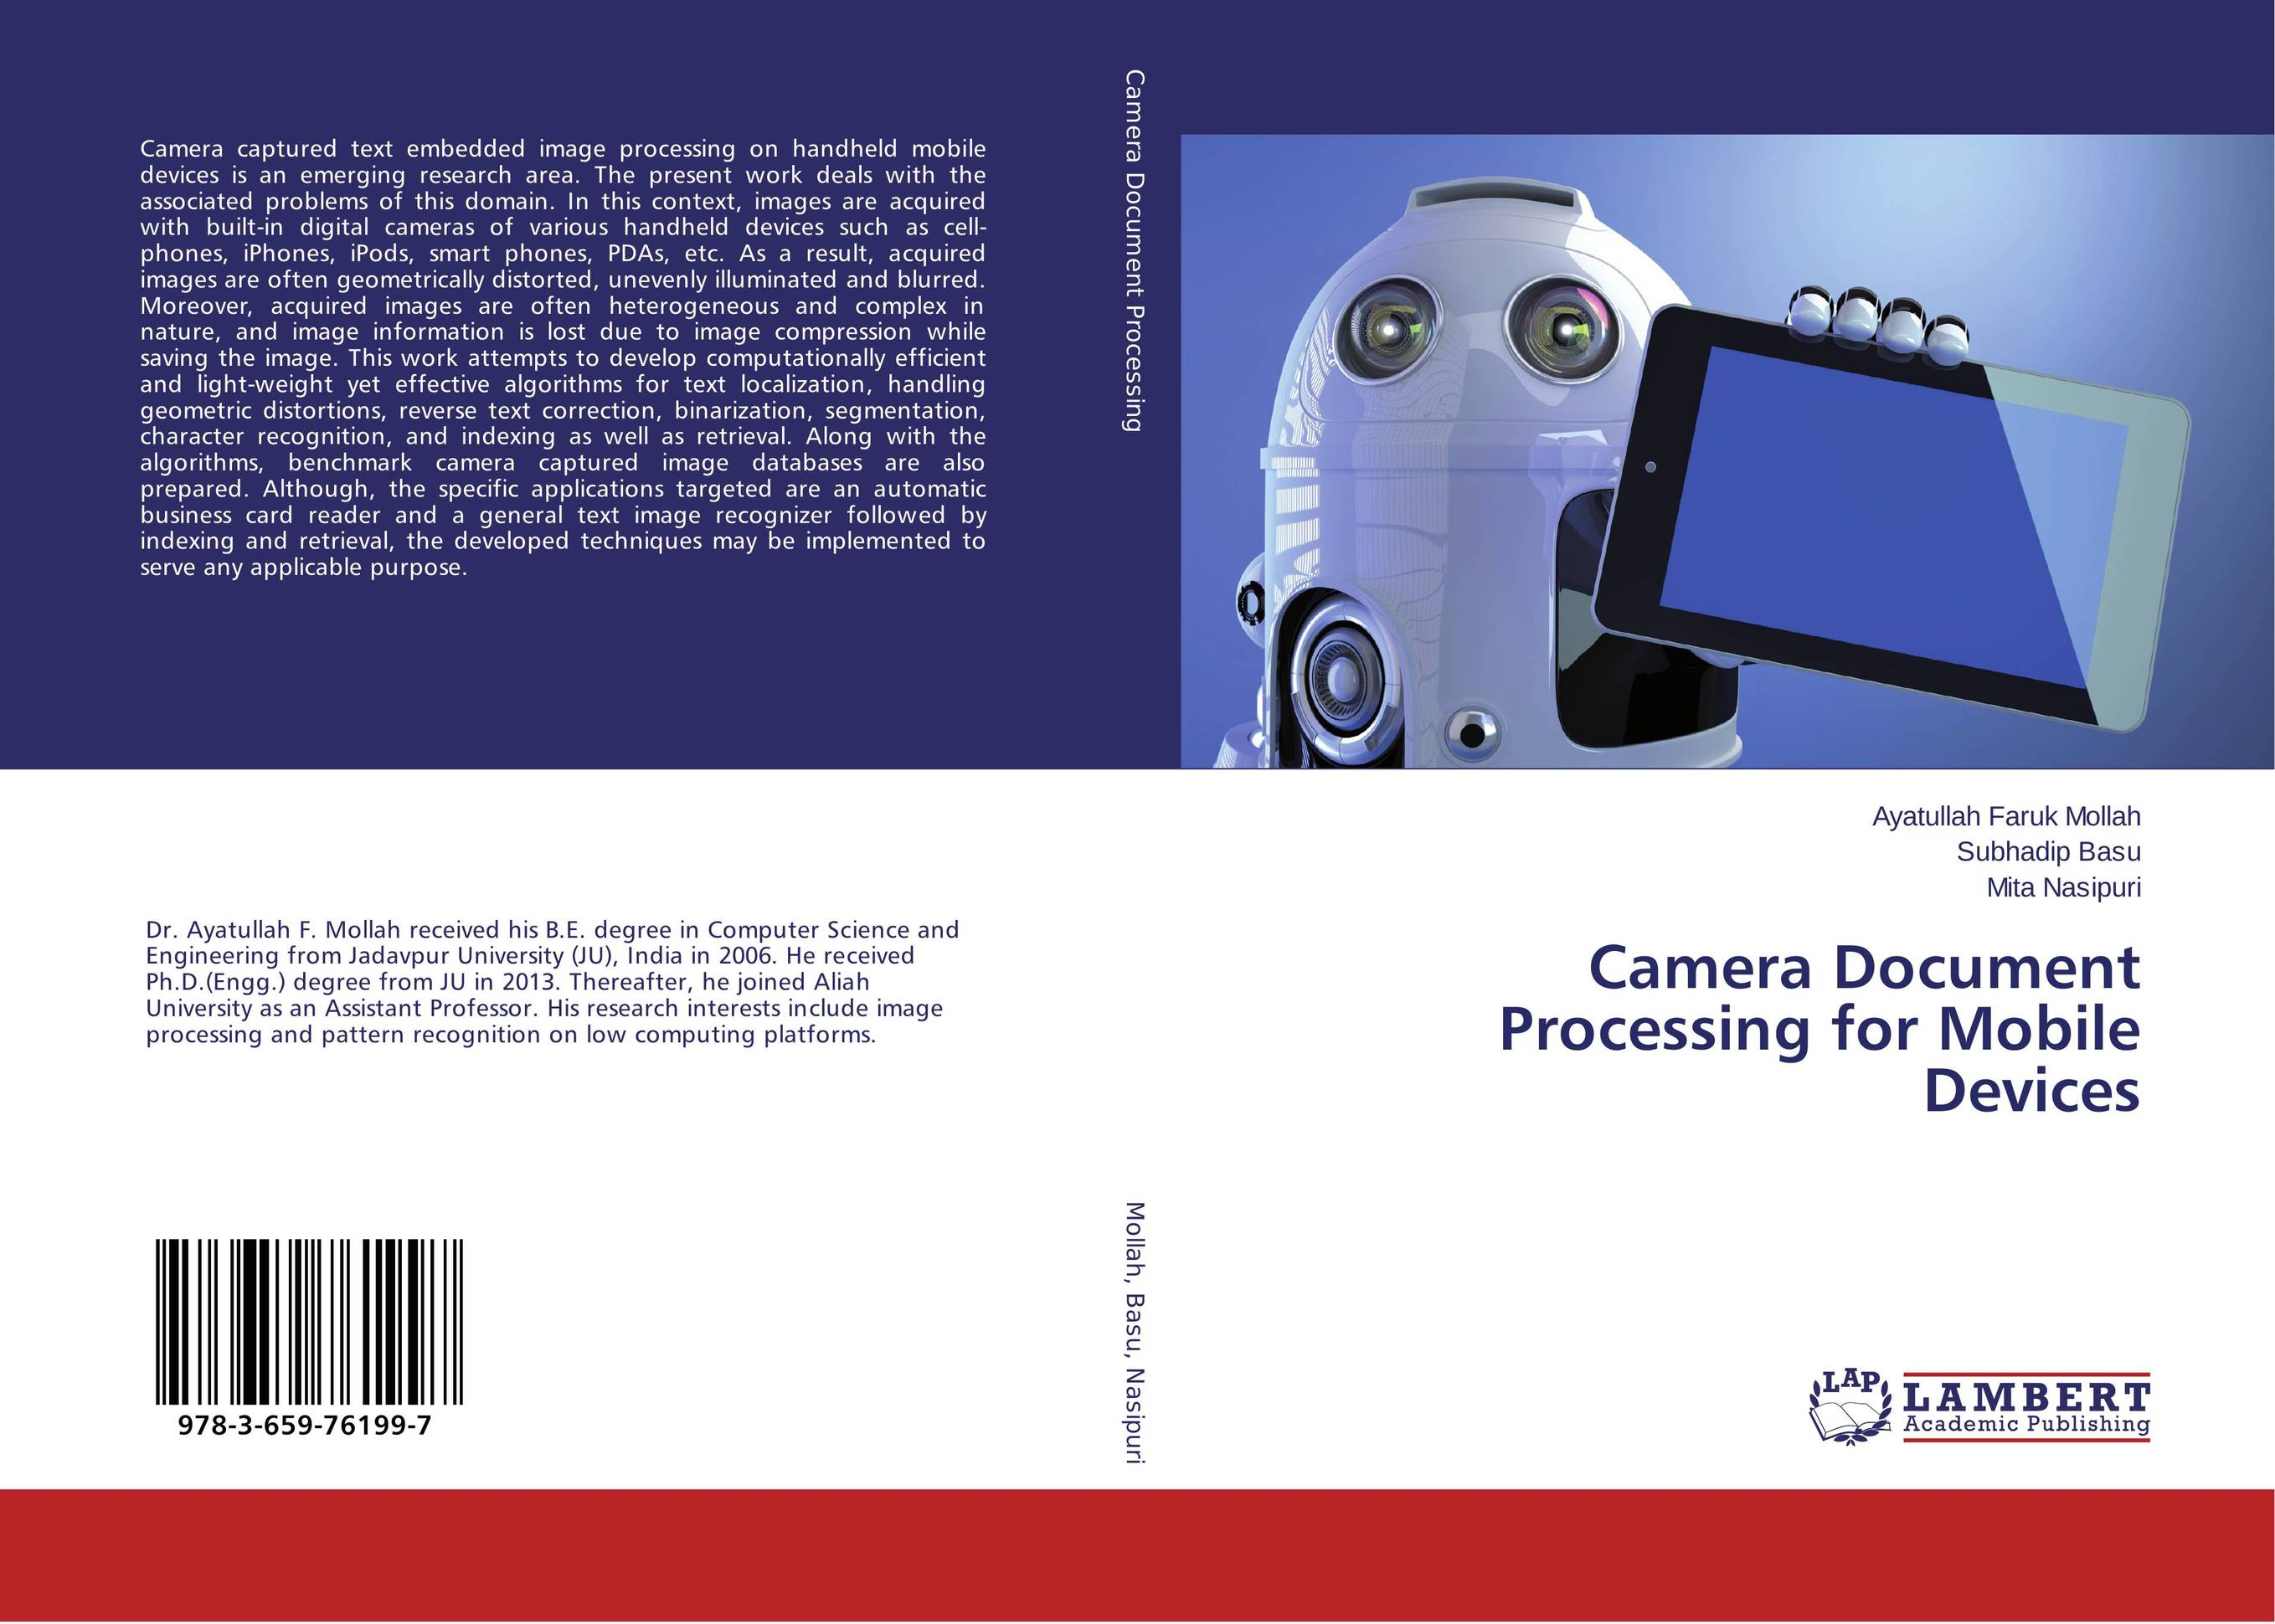 Camera Document Processing for Mobile Devices